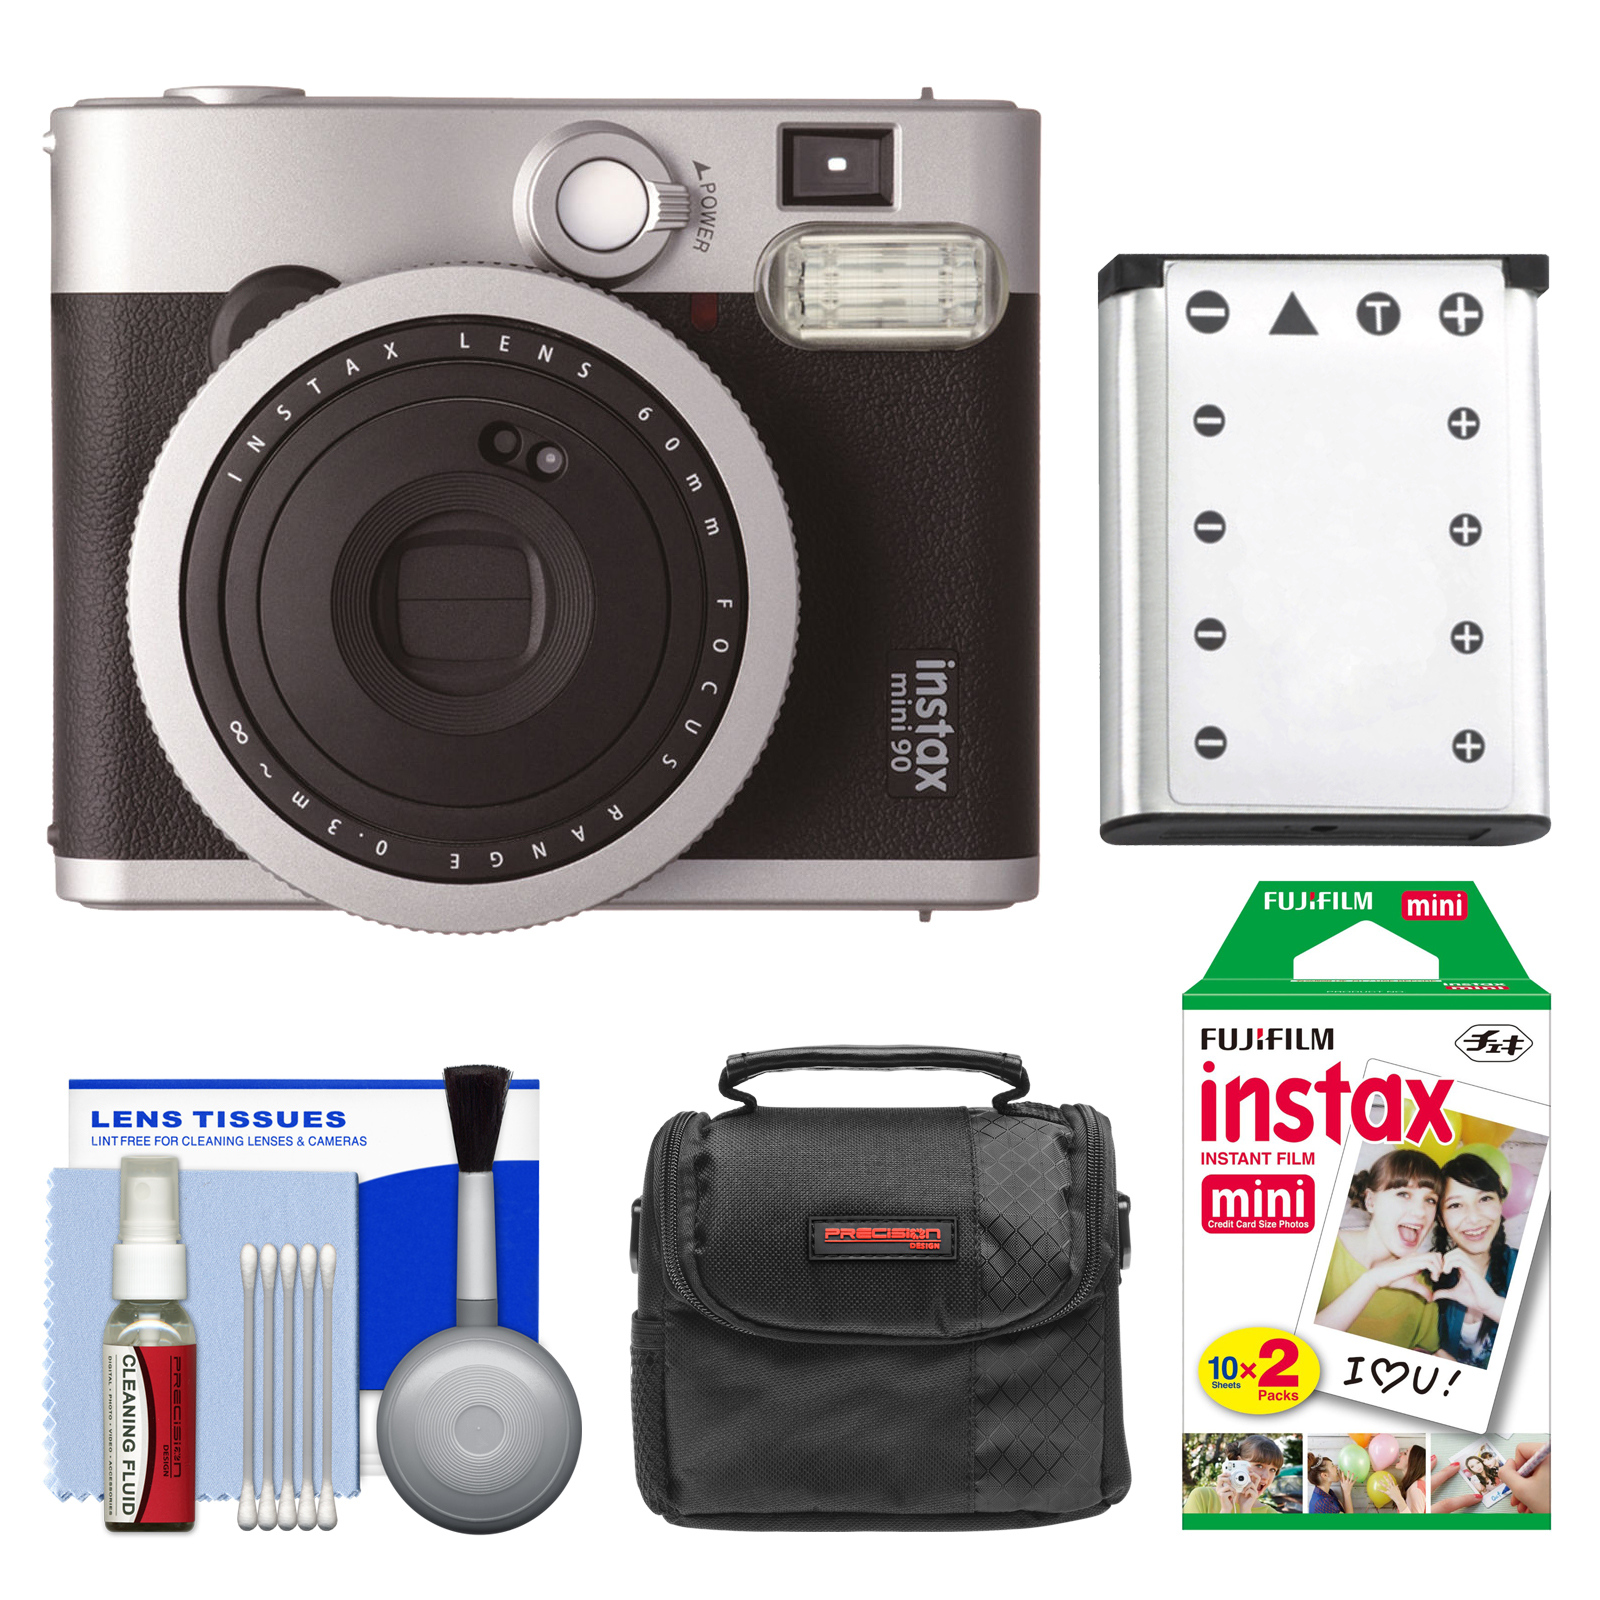 FujiFilm Instax Mini 90 Neo Classic Instant Film Camera with Instant Film + Case + Battery + Cleaning Kit by Fujifilm